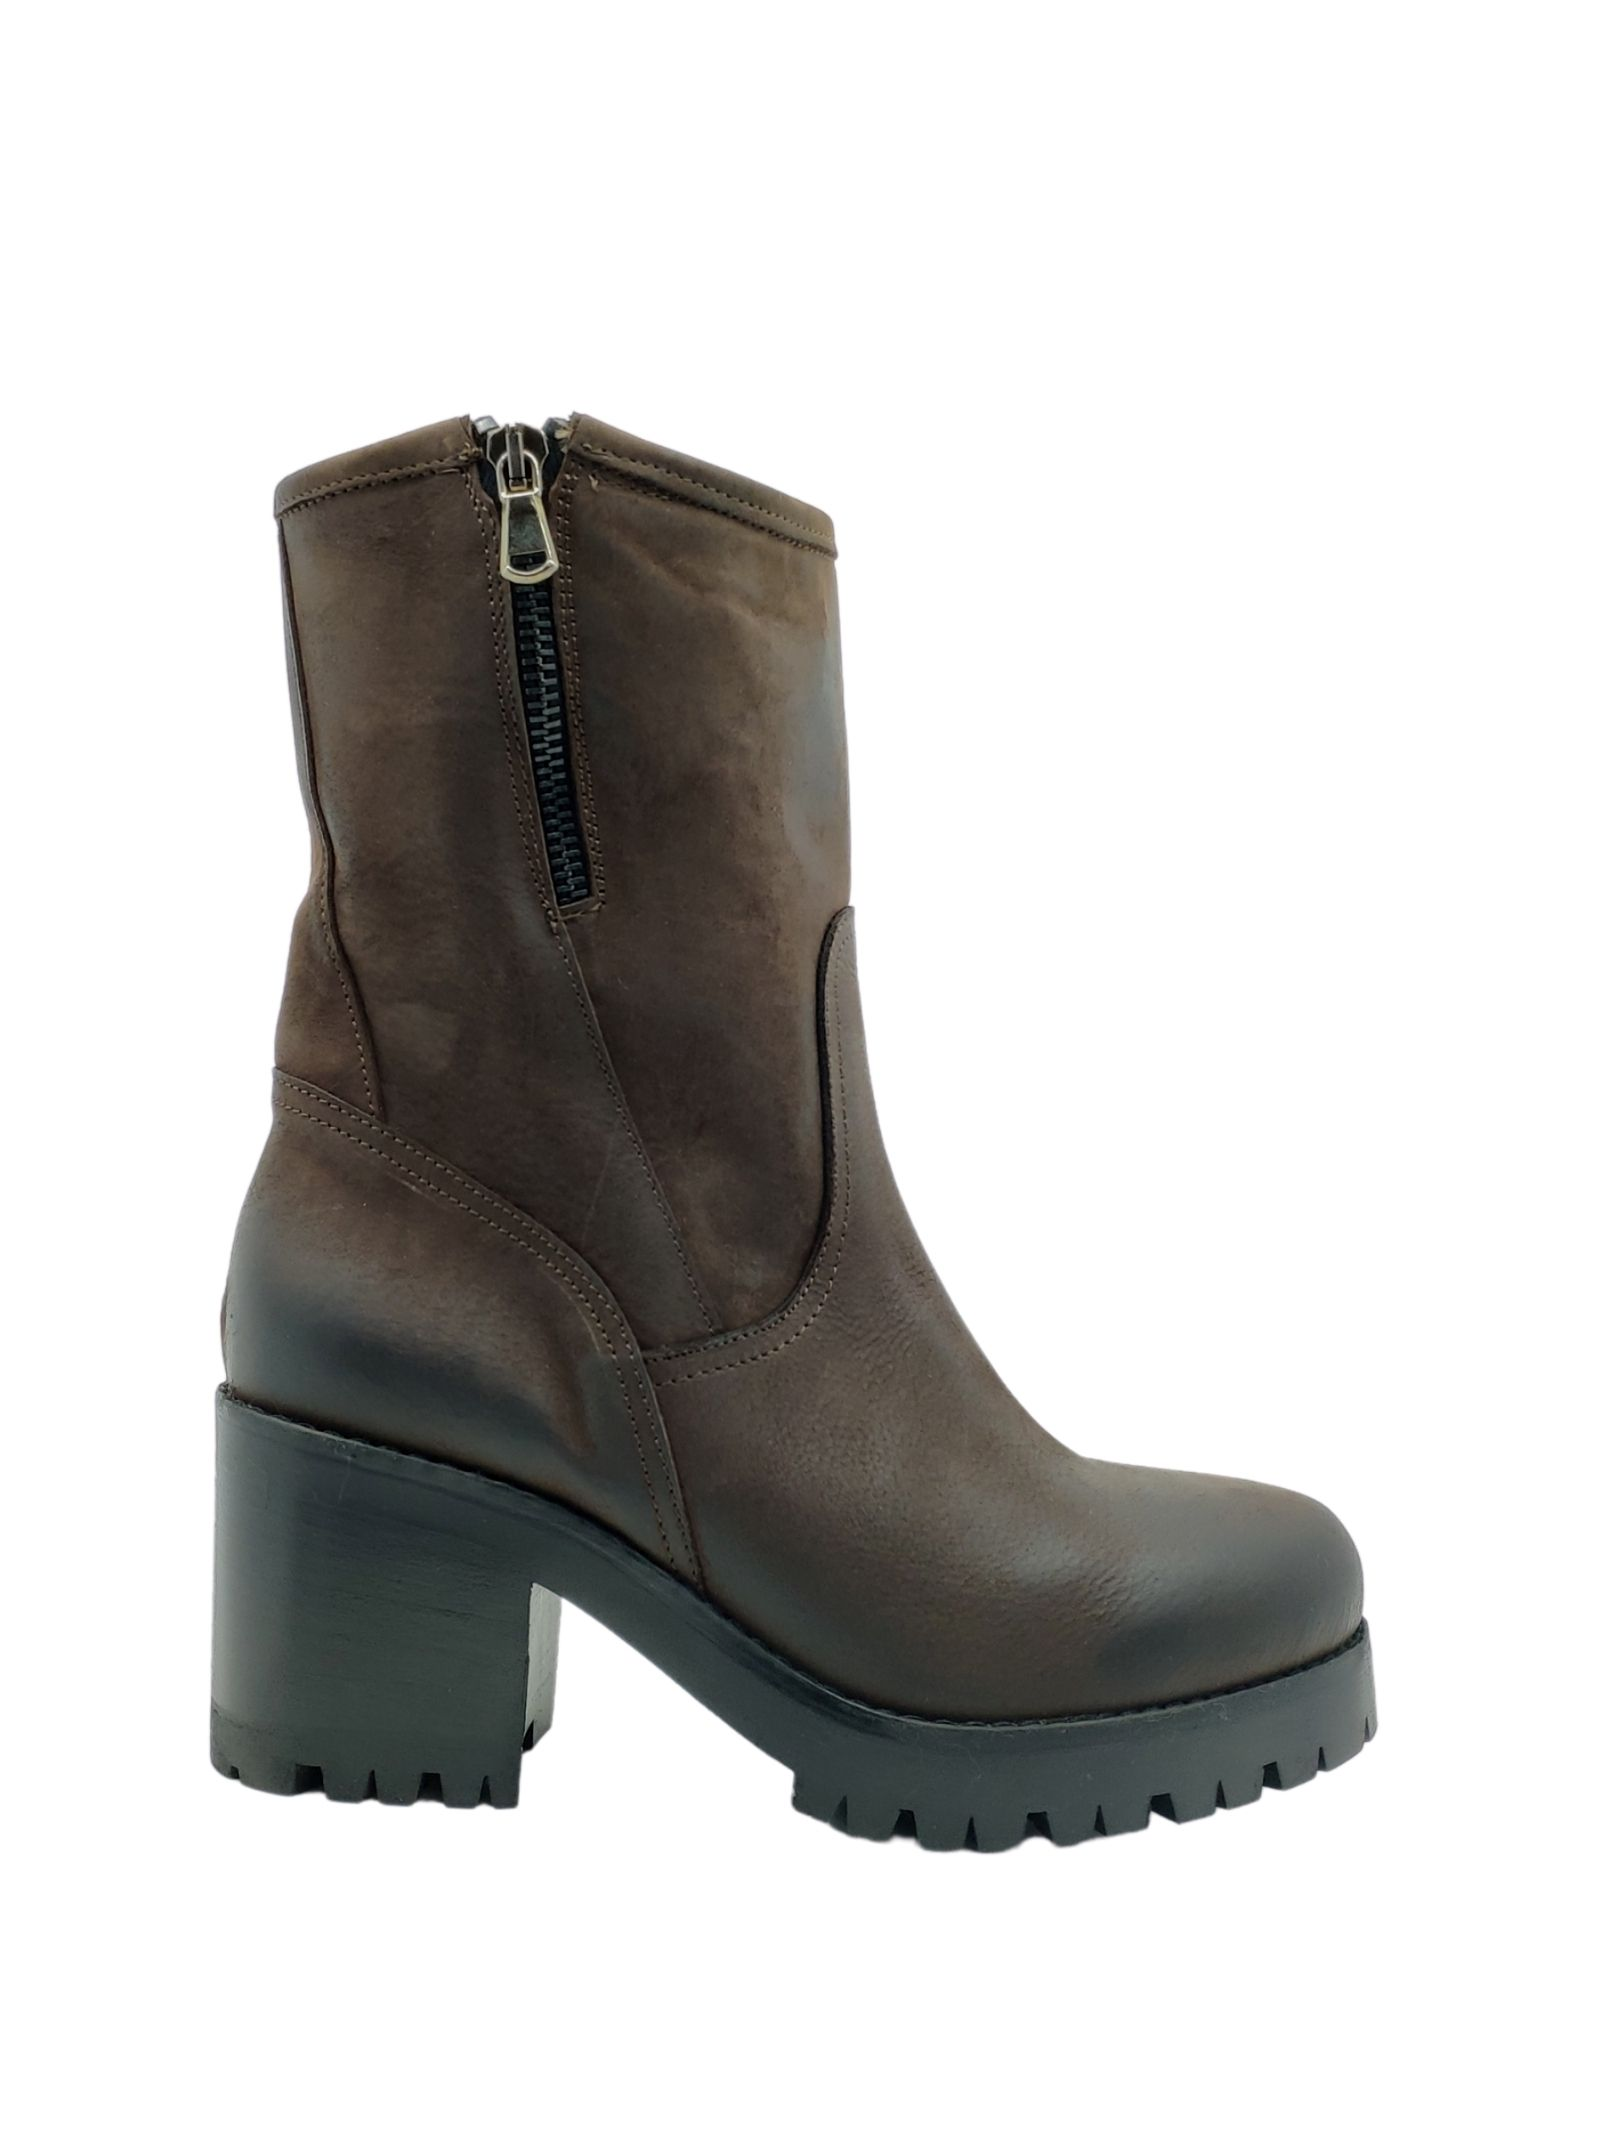 Women's Zip Amphibious Ankle Boots Tattoo   Ankle Boots   GIULIA13SMORO